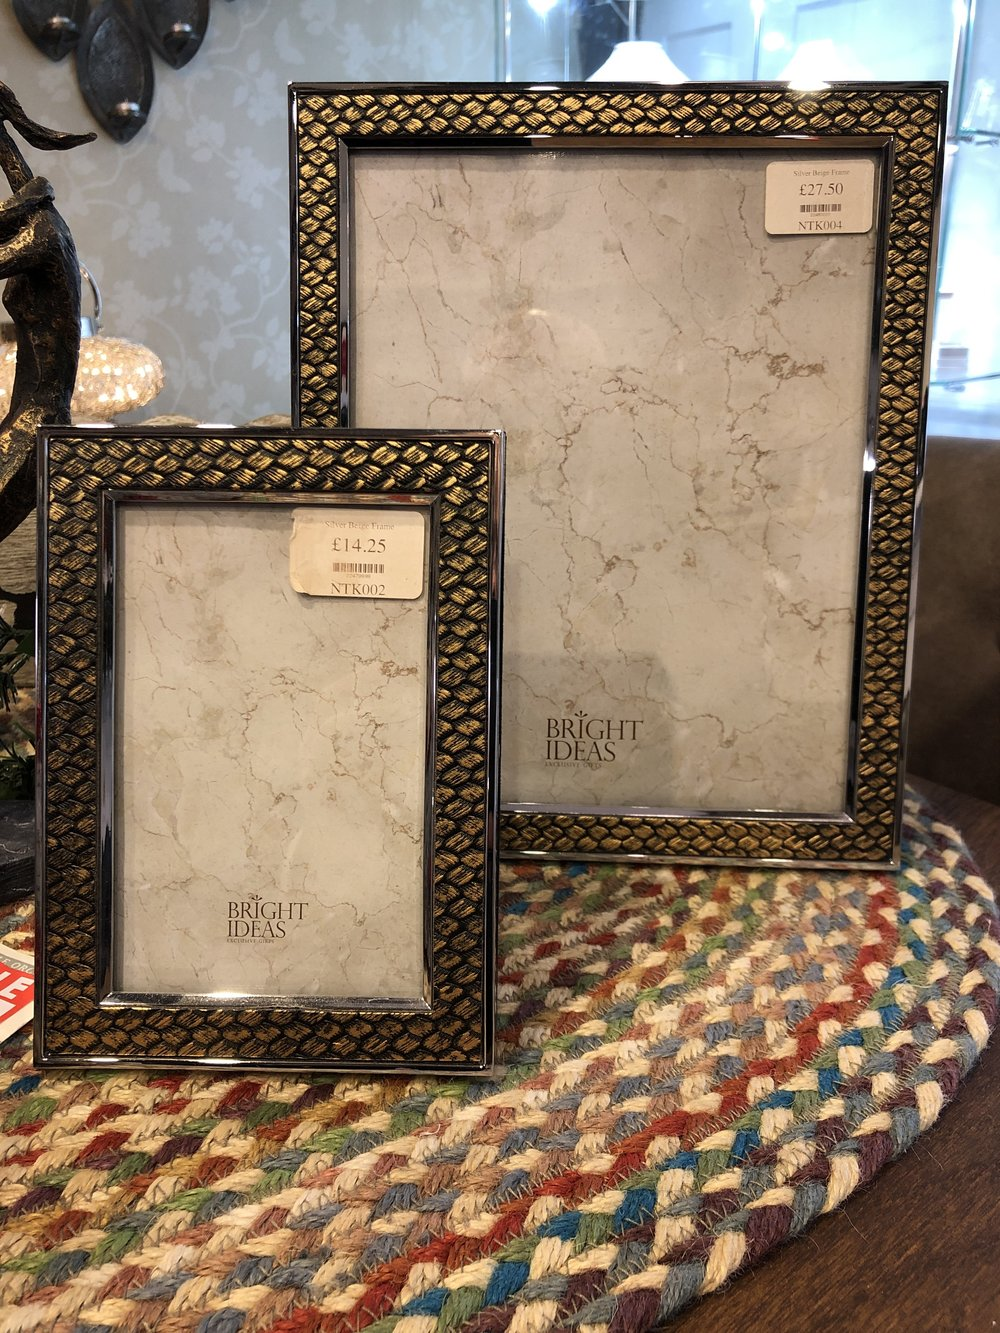 Weave effect photo frames Were £14.25 & £27.50, NOW £9.95 & £18.95